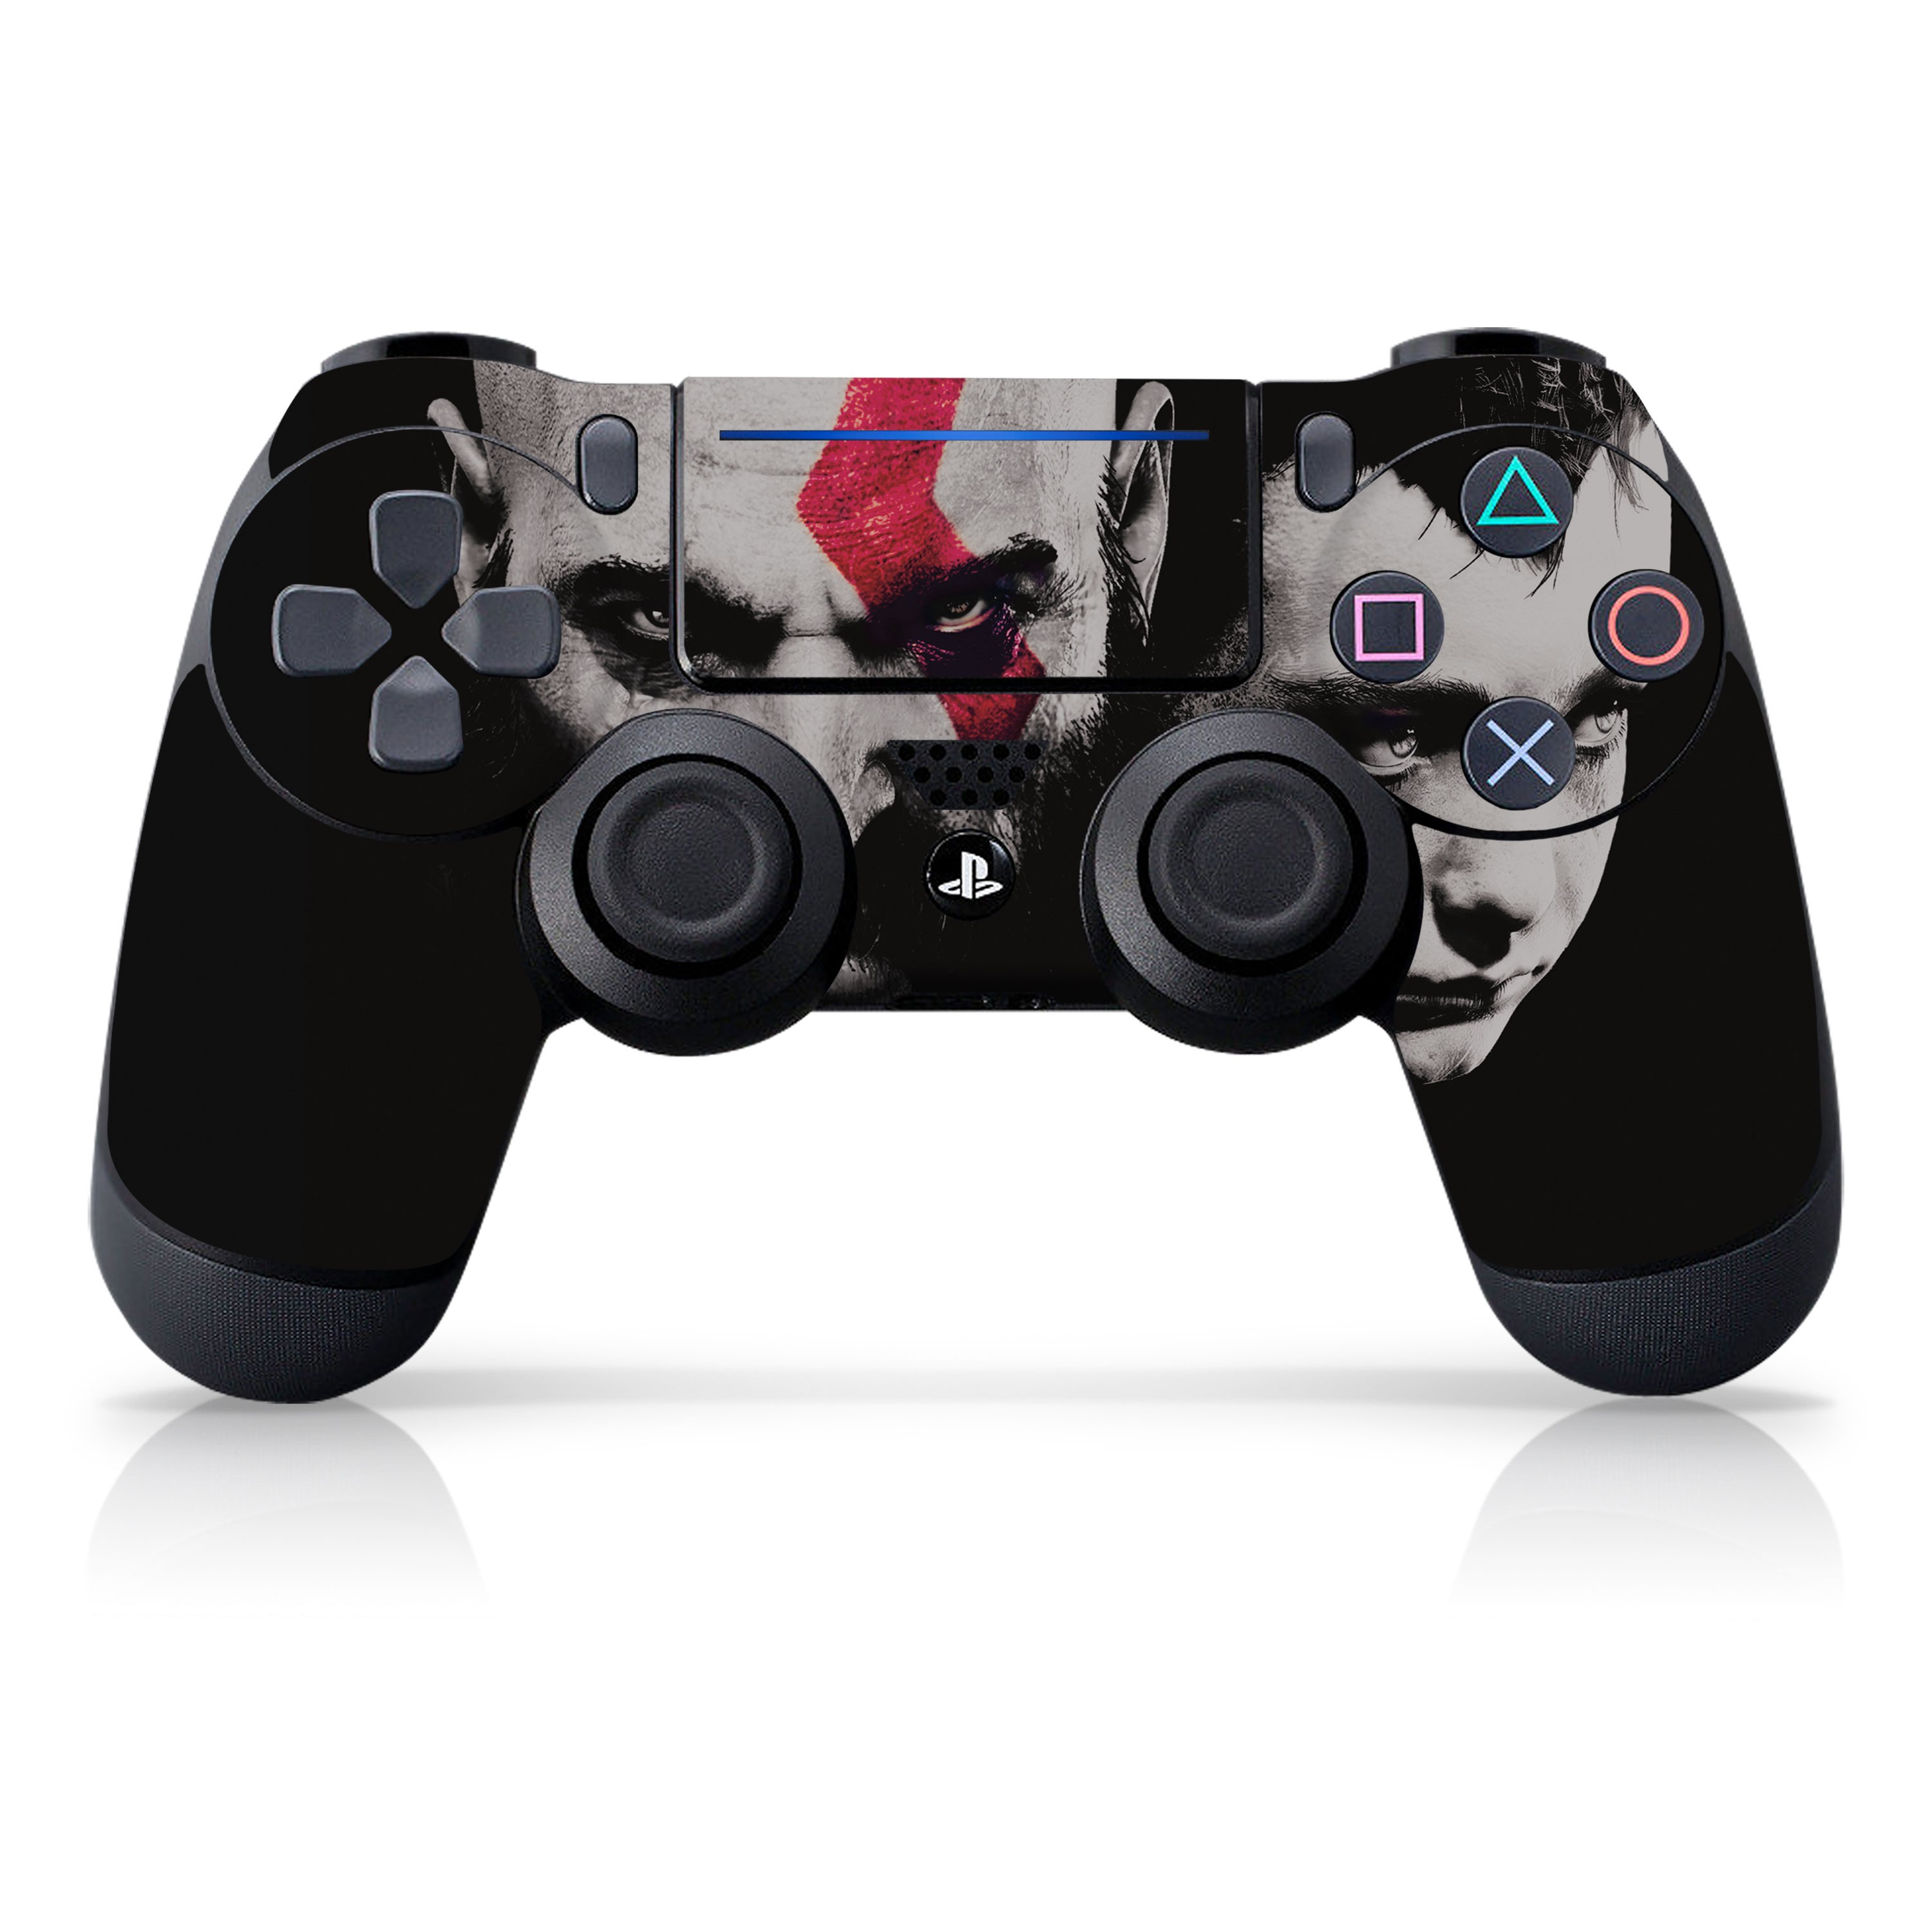 "Officially Licensed PlayStation 4 God of War DUALSHOCK 4 Wireless Controller Skin and Tech Decals ""Faces"""